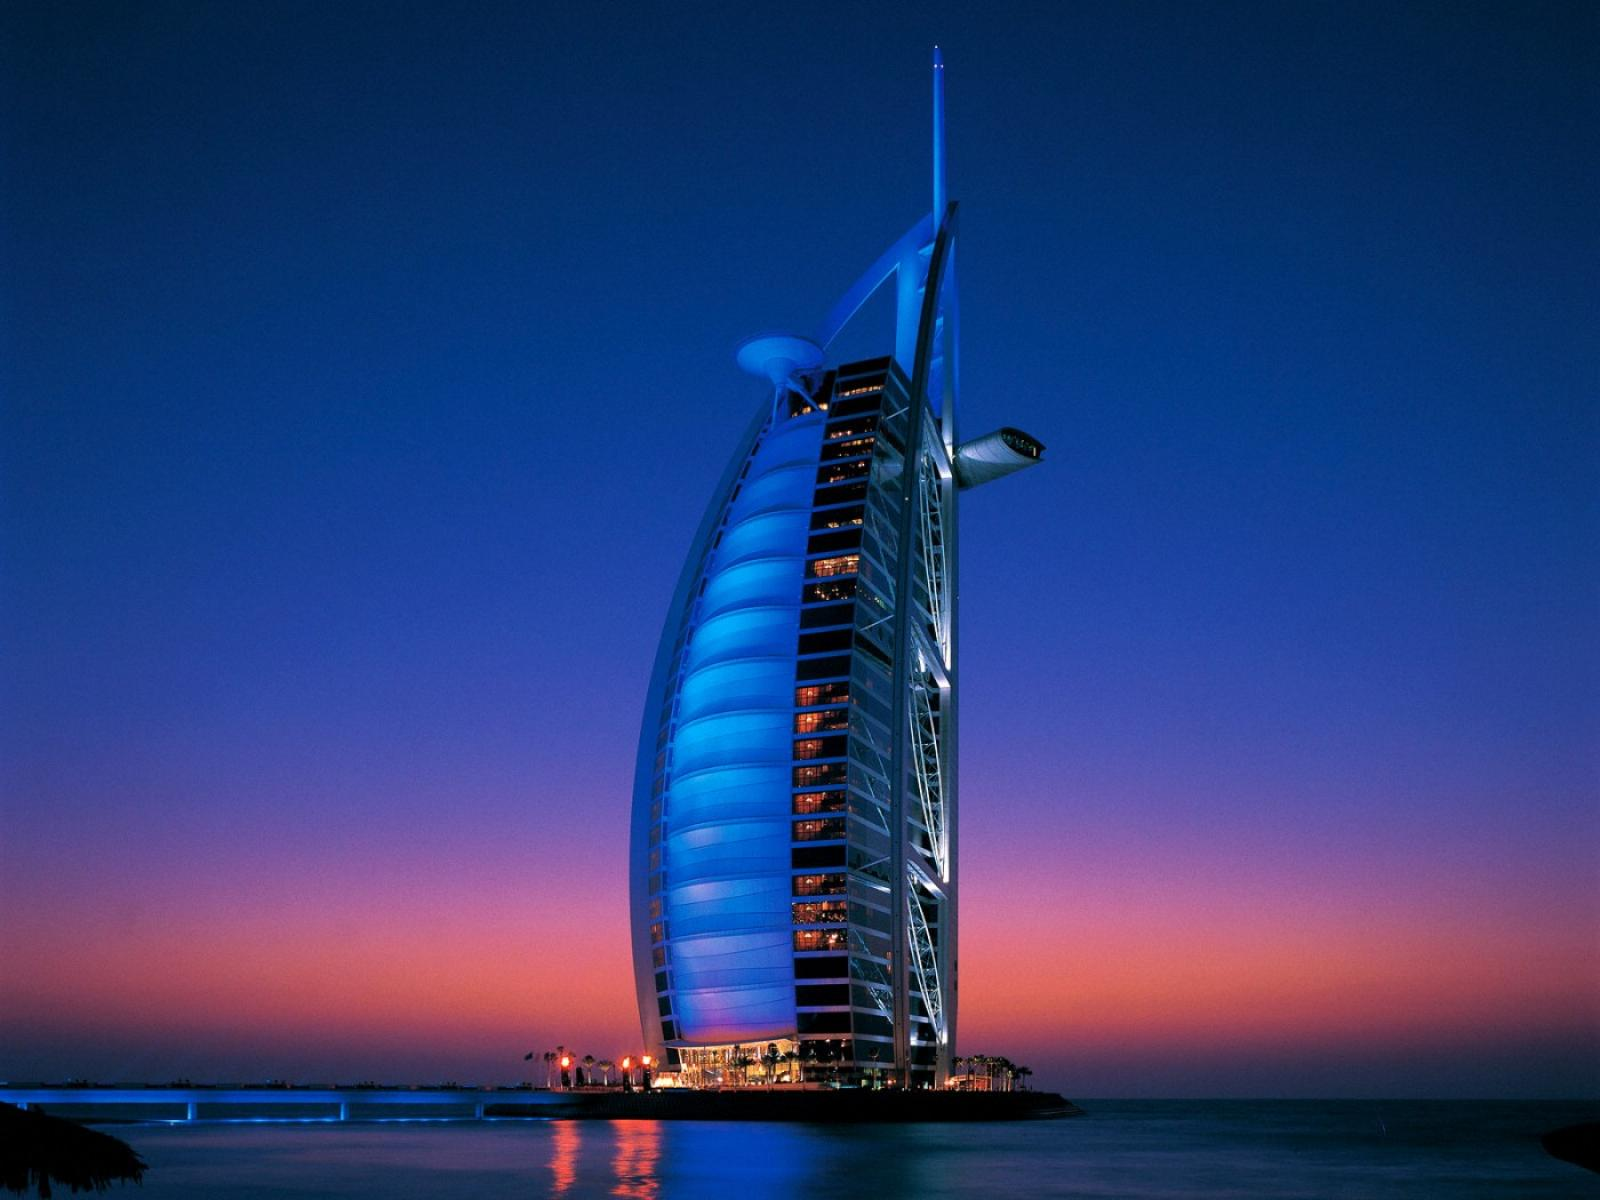 Dubai burj al arab wallpapers dubai burj al arab stock for Burj arab dubai